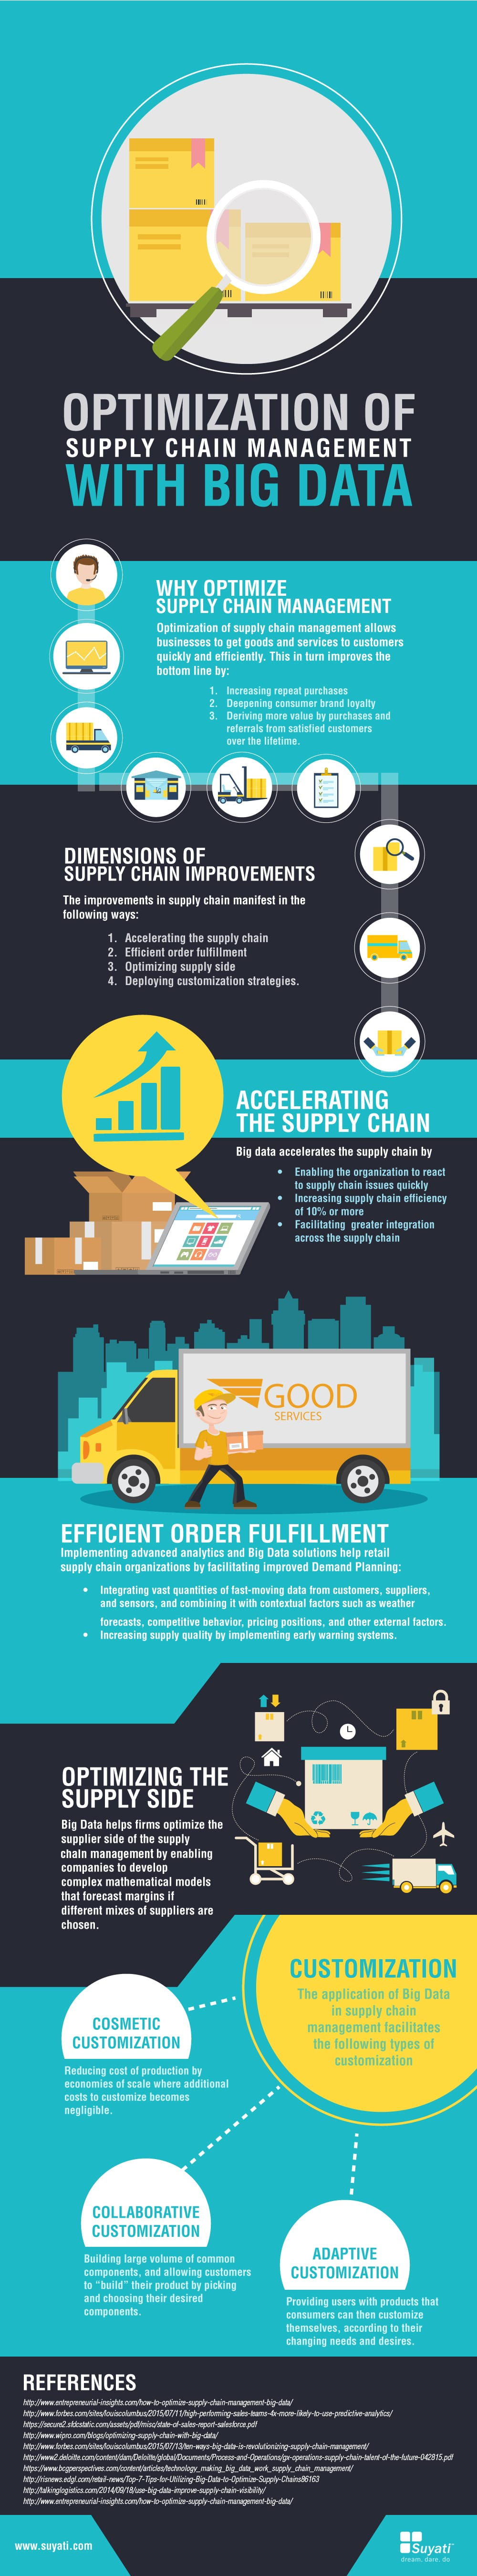 Optimization of Supply Chain Management with Big Data-min